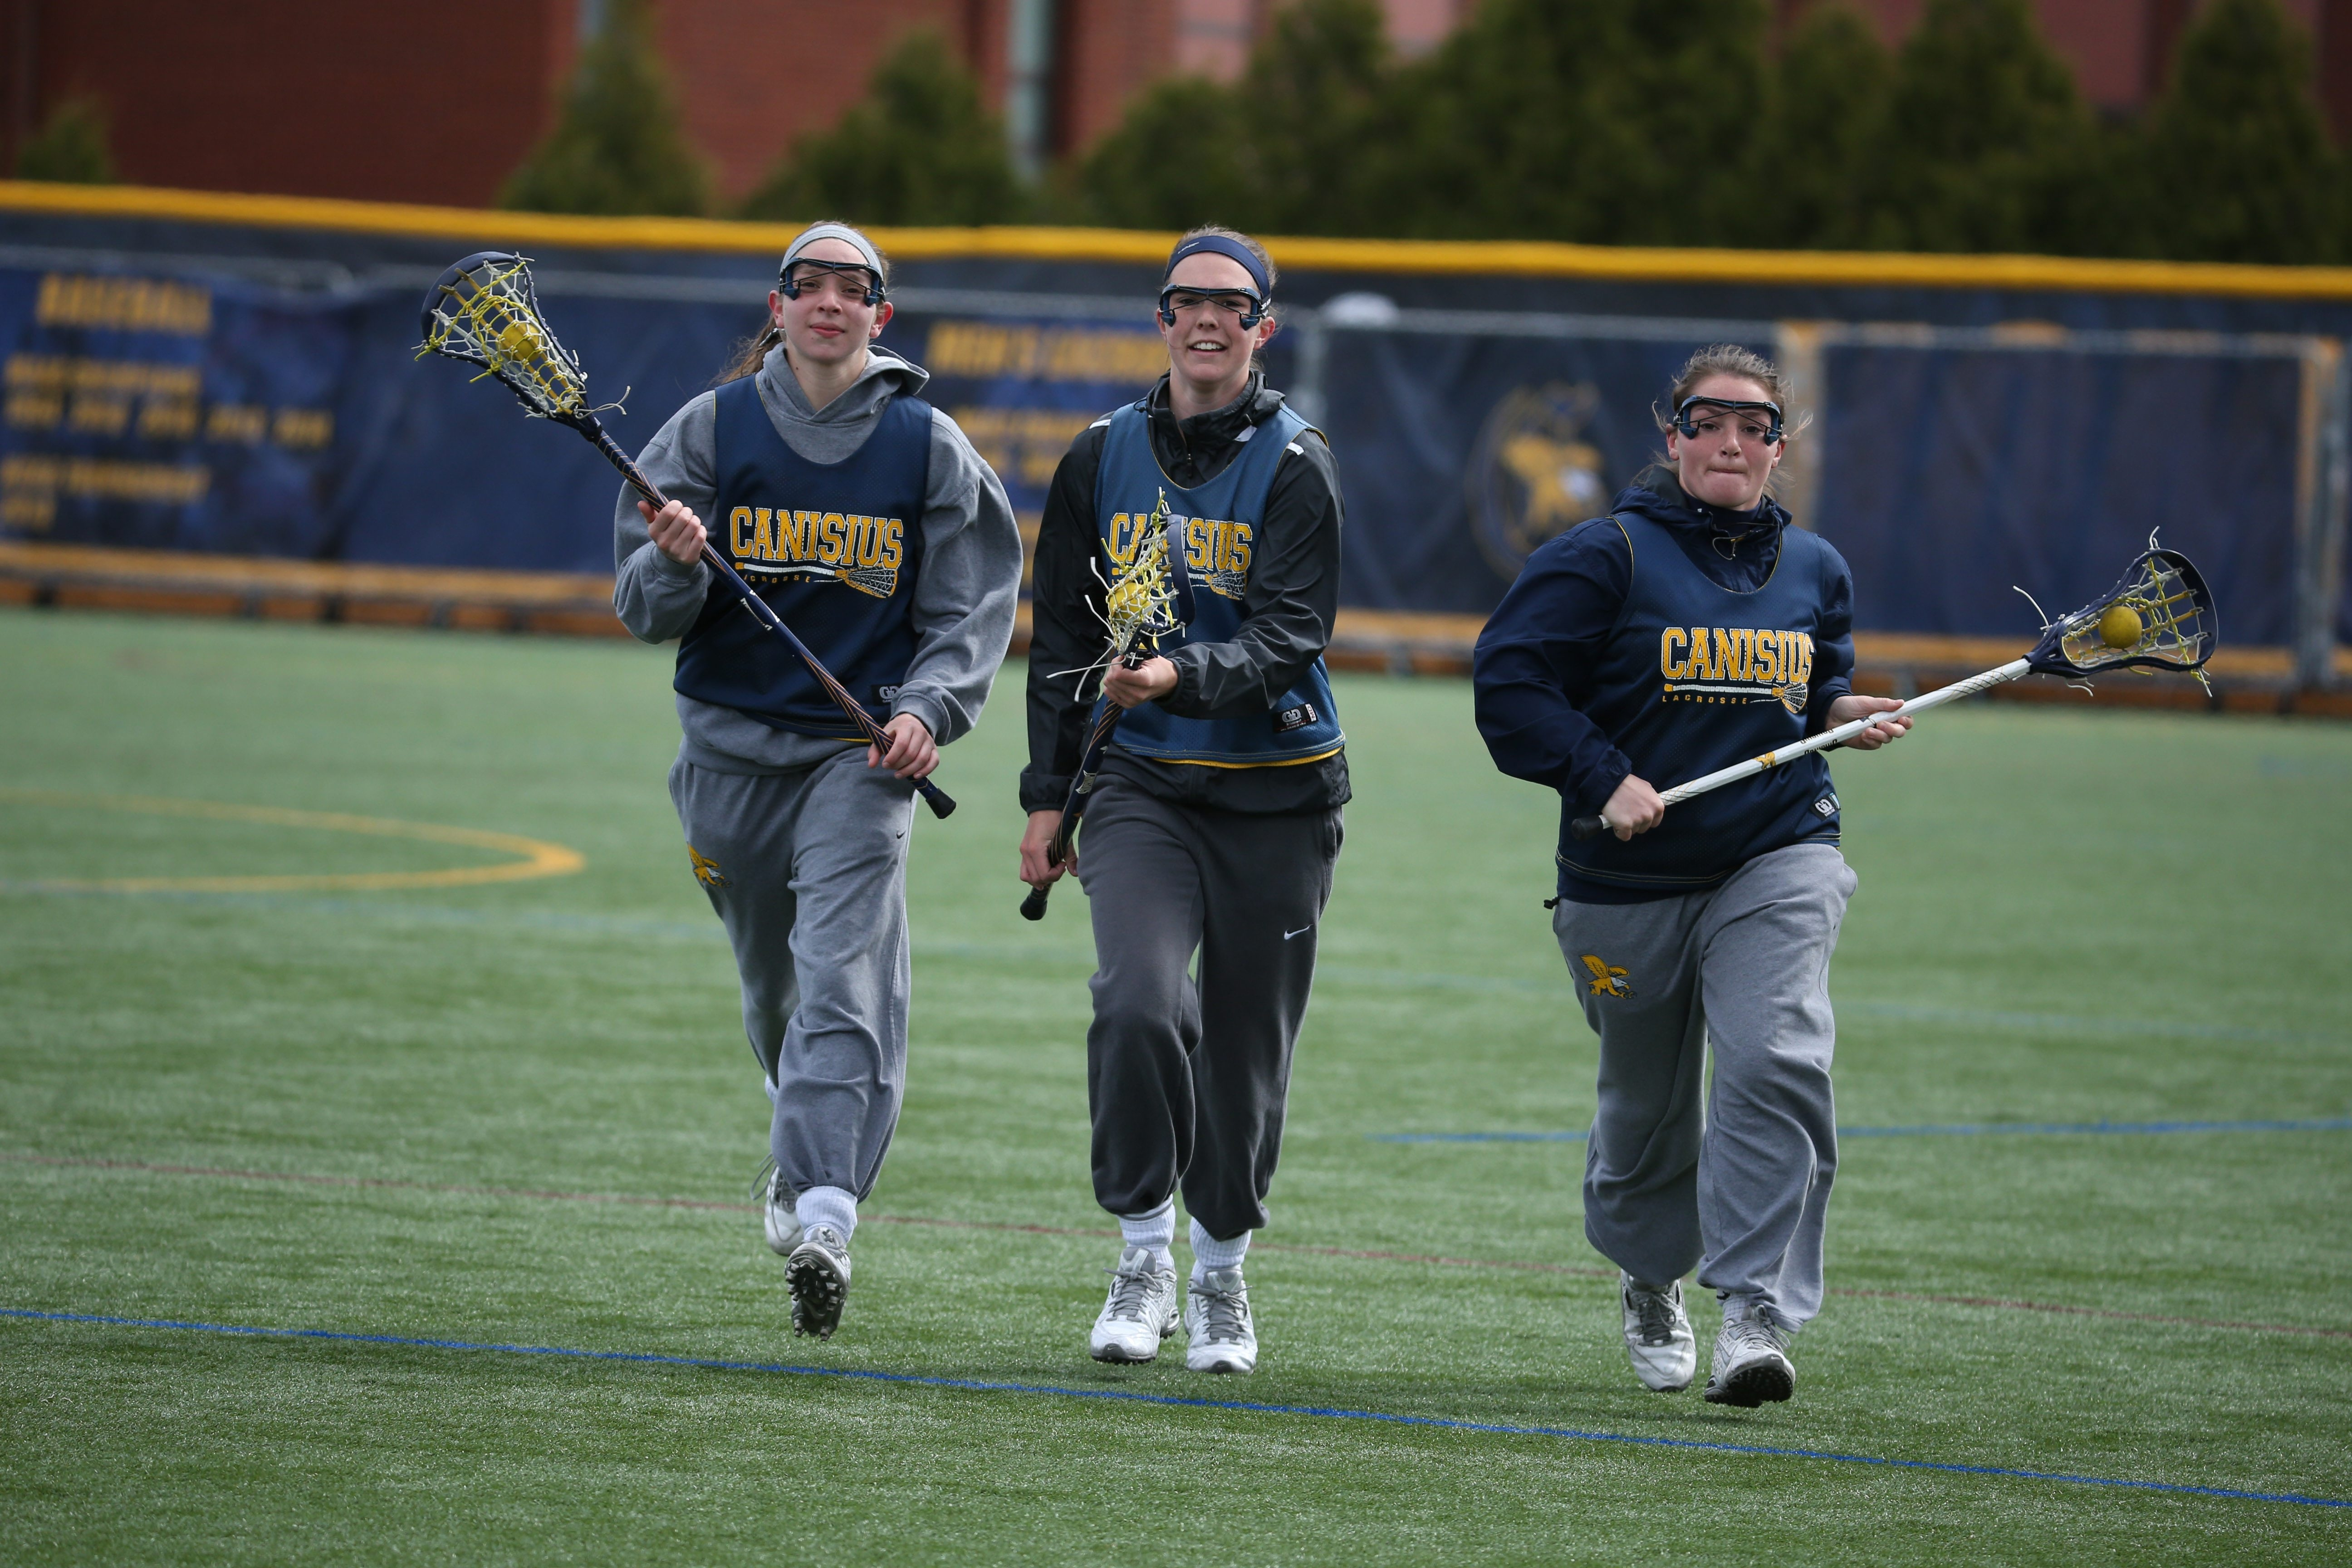 Canisius women's lacrosse players (left to right) Tori Greco, Erica Evans and Tori Quinn are gearing up for another MAAC Tournament.